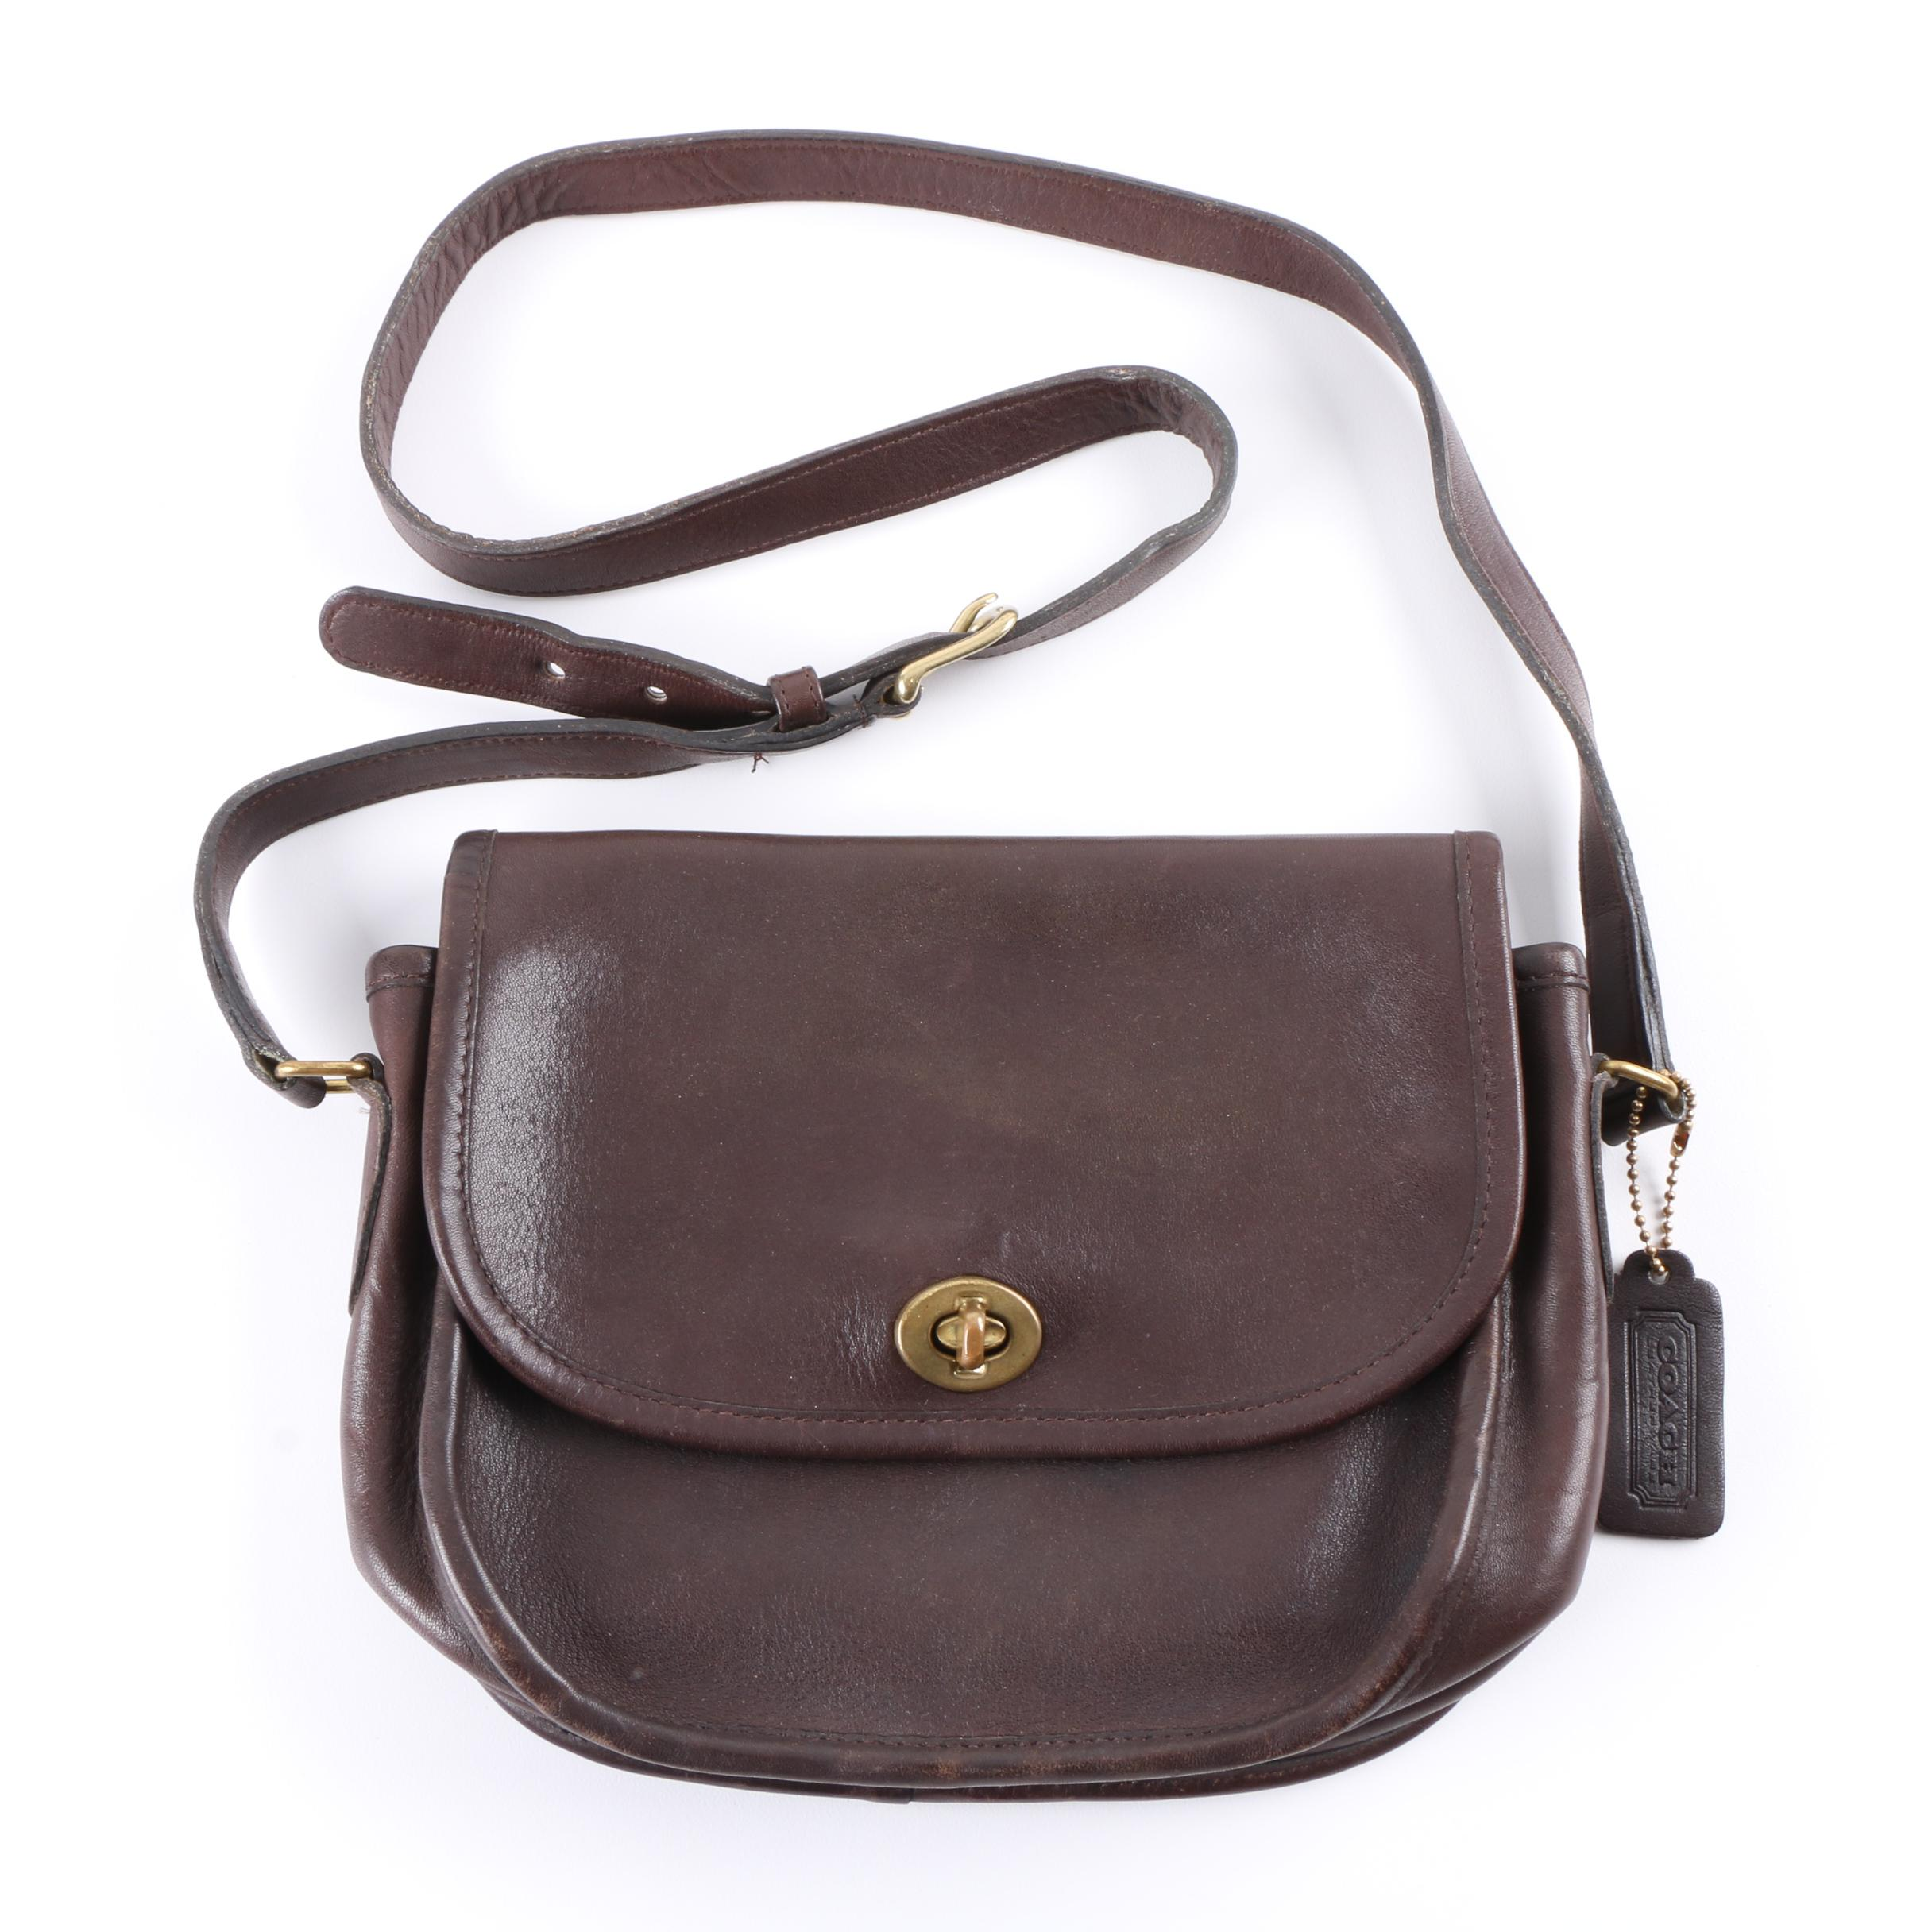 7b9ae91530 ... promo code for vintage coach new york city brown leather crossbody bag  00f42 5706e